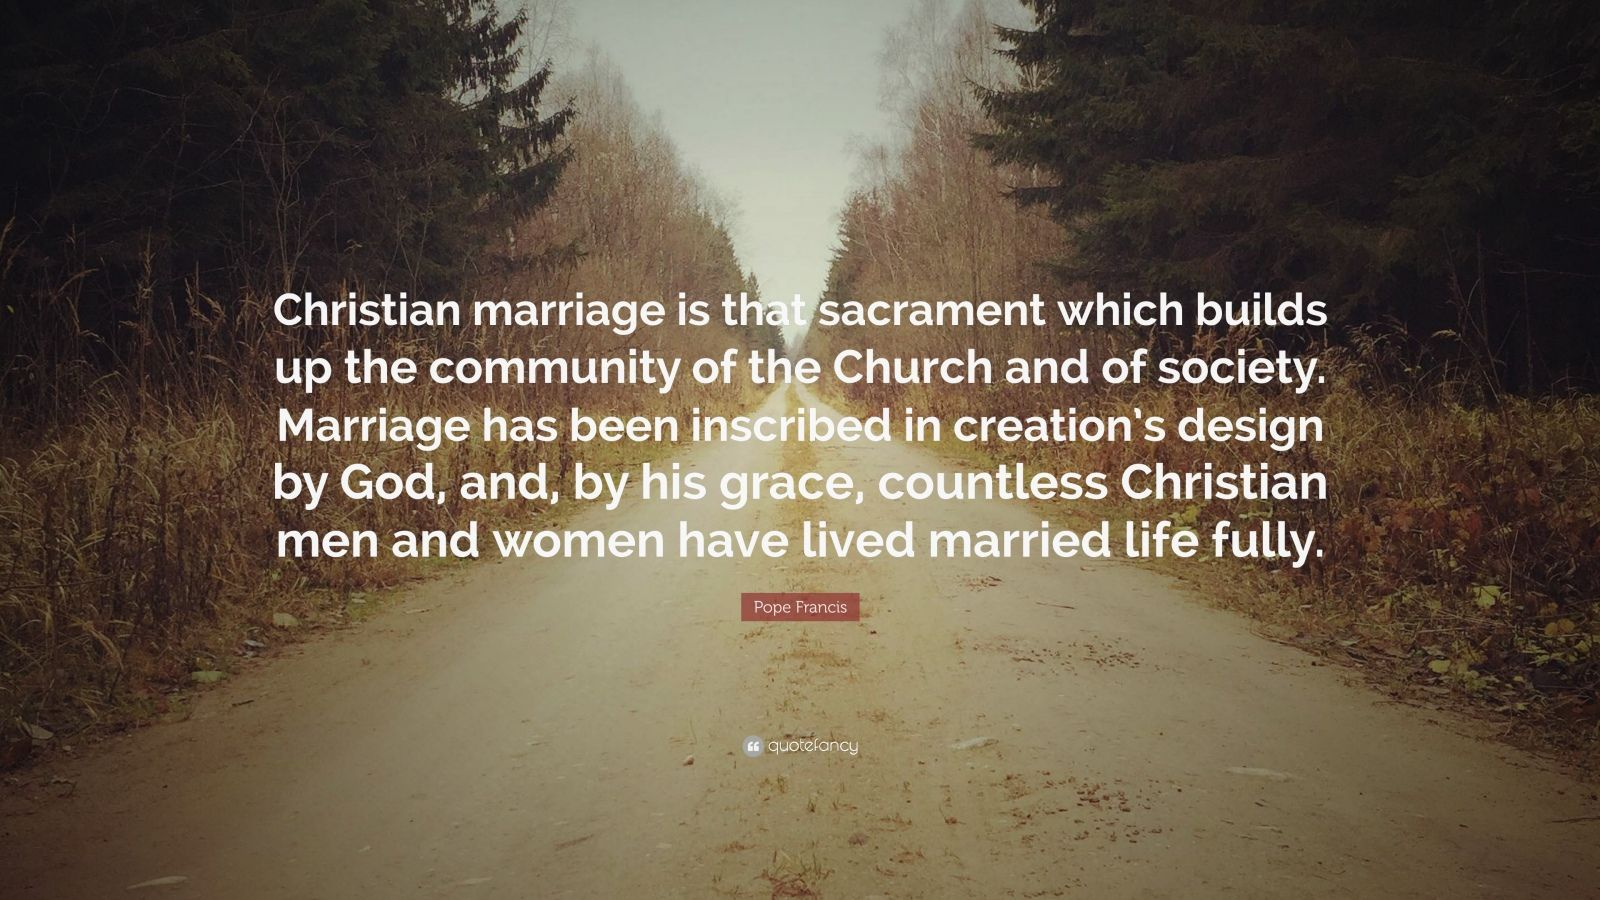 """Pope Francis Quote: """"Christian marriage is that sacrament which builds up the community of the Church and of society. Marriage has been inscribed in creation's design by God, and, by his grace, countless Christian men and women have lived married life fully."""""""